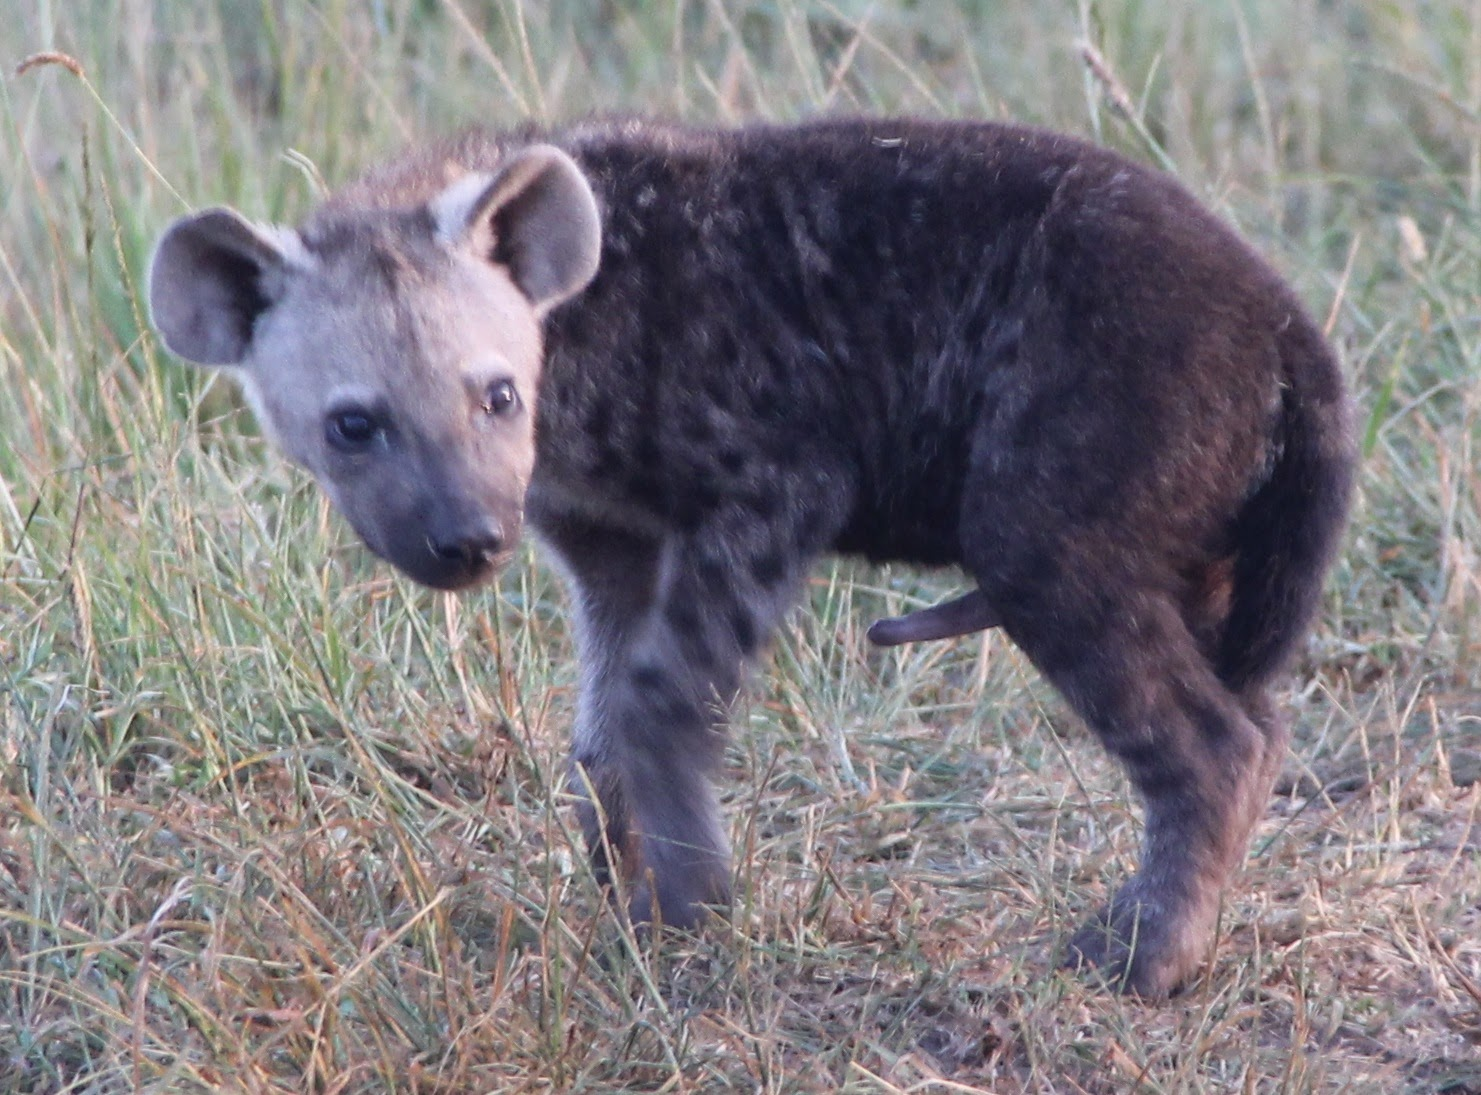 Notes From Kenya Msu Hyena Research March 2014-8122